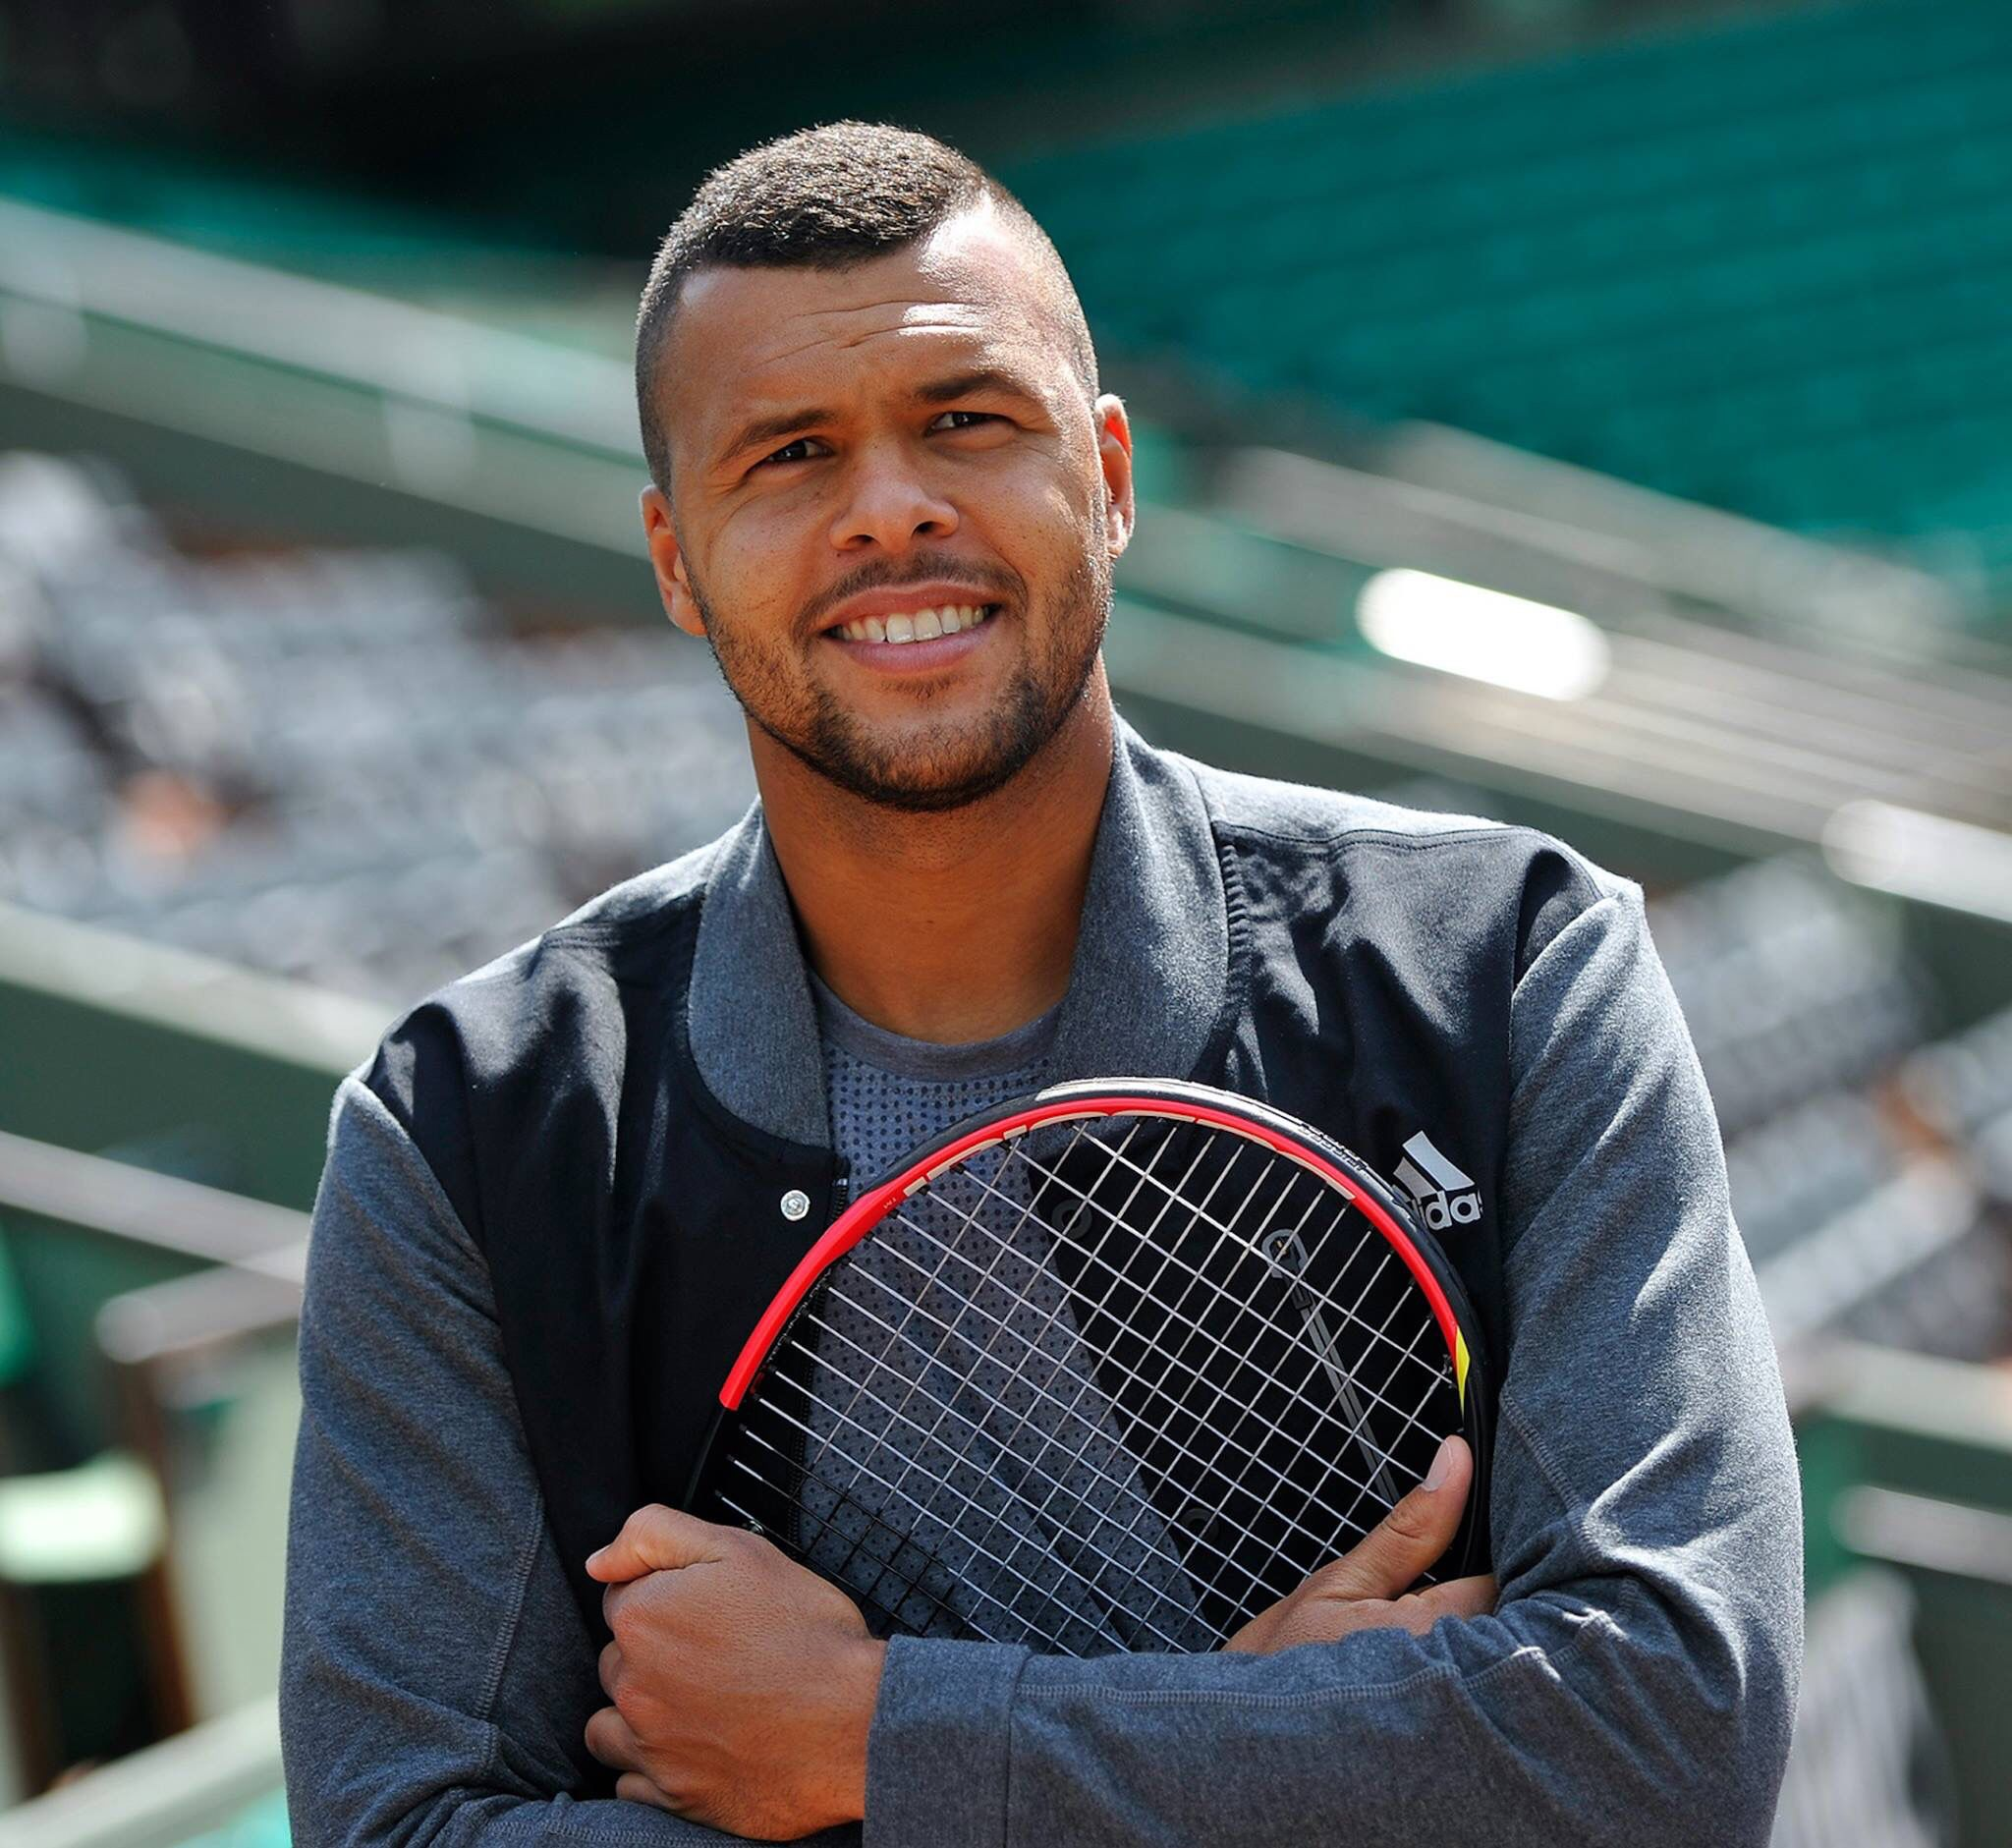 Tsonga (With images) Tennis, Tennis racket, Sports